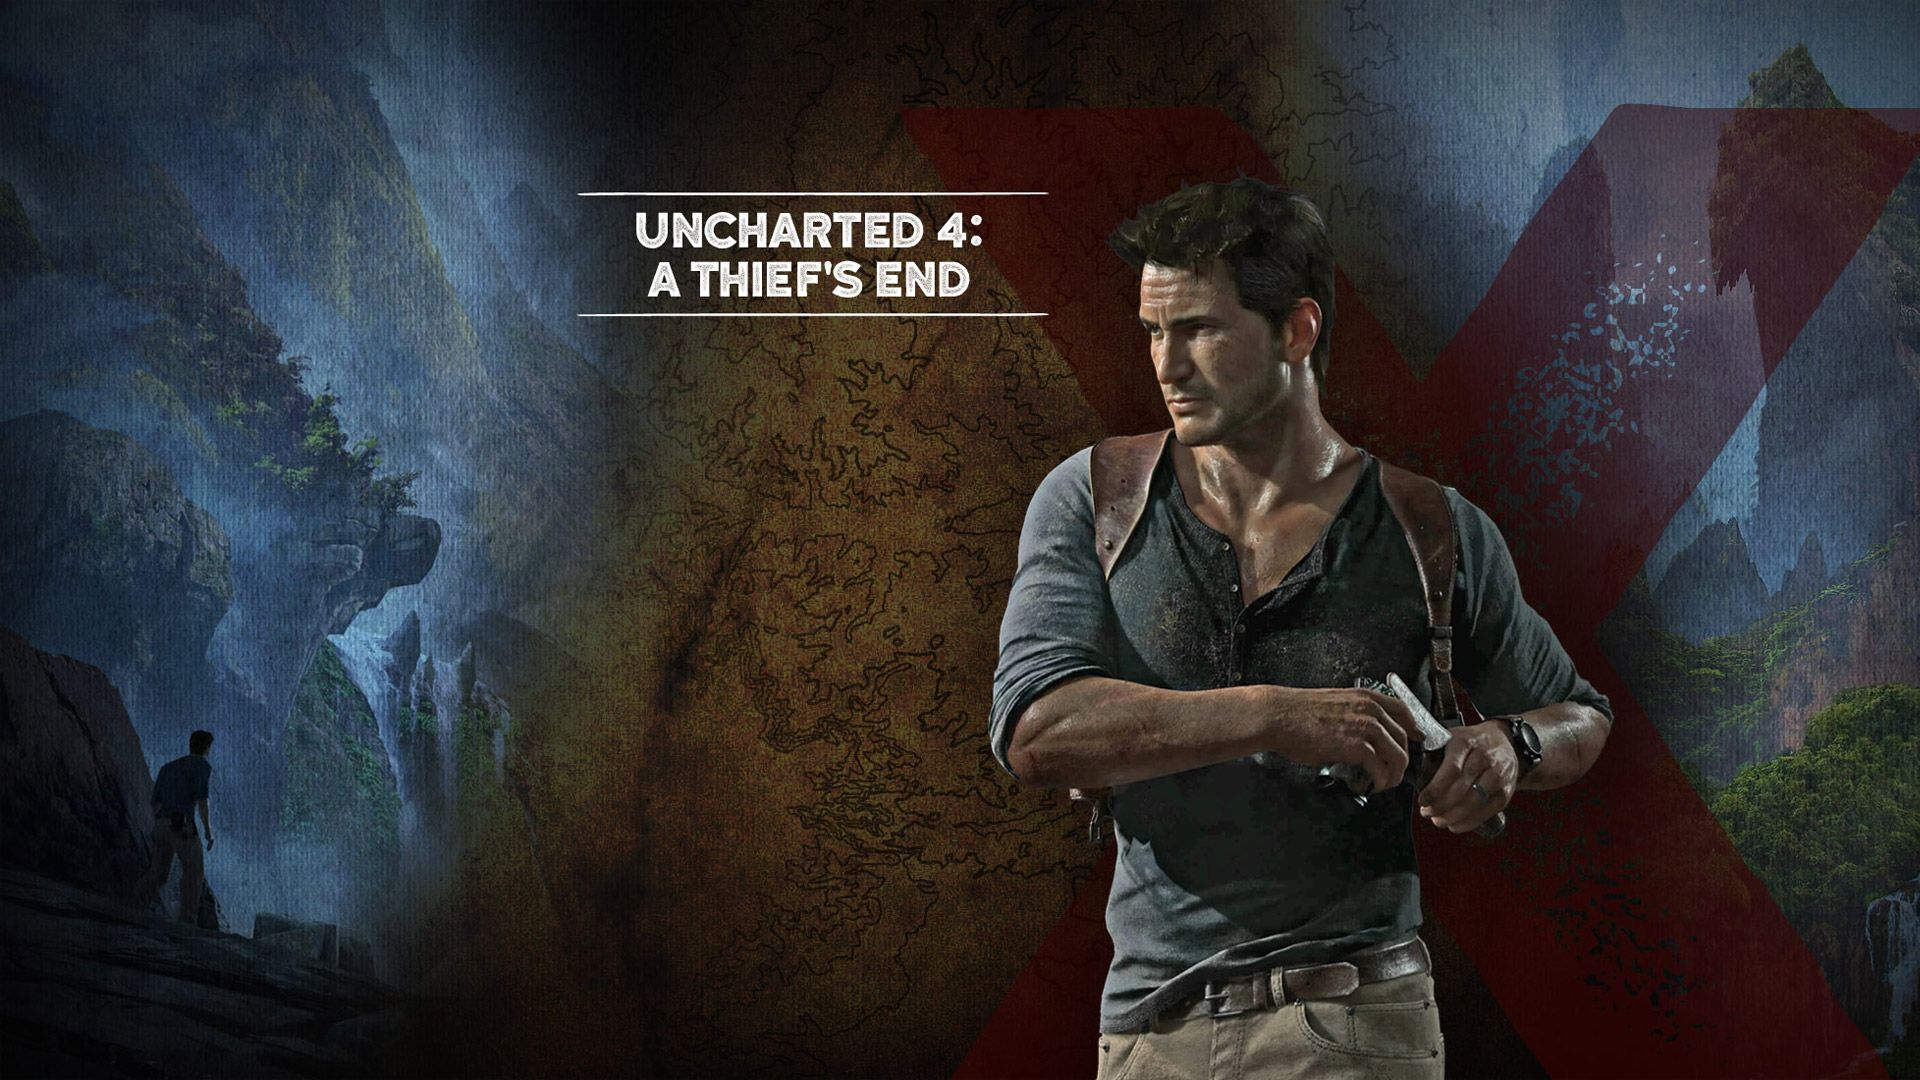 uncharted 4: a thief's end | uncharted 4 a thief . end hd wallpapers